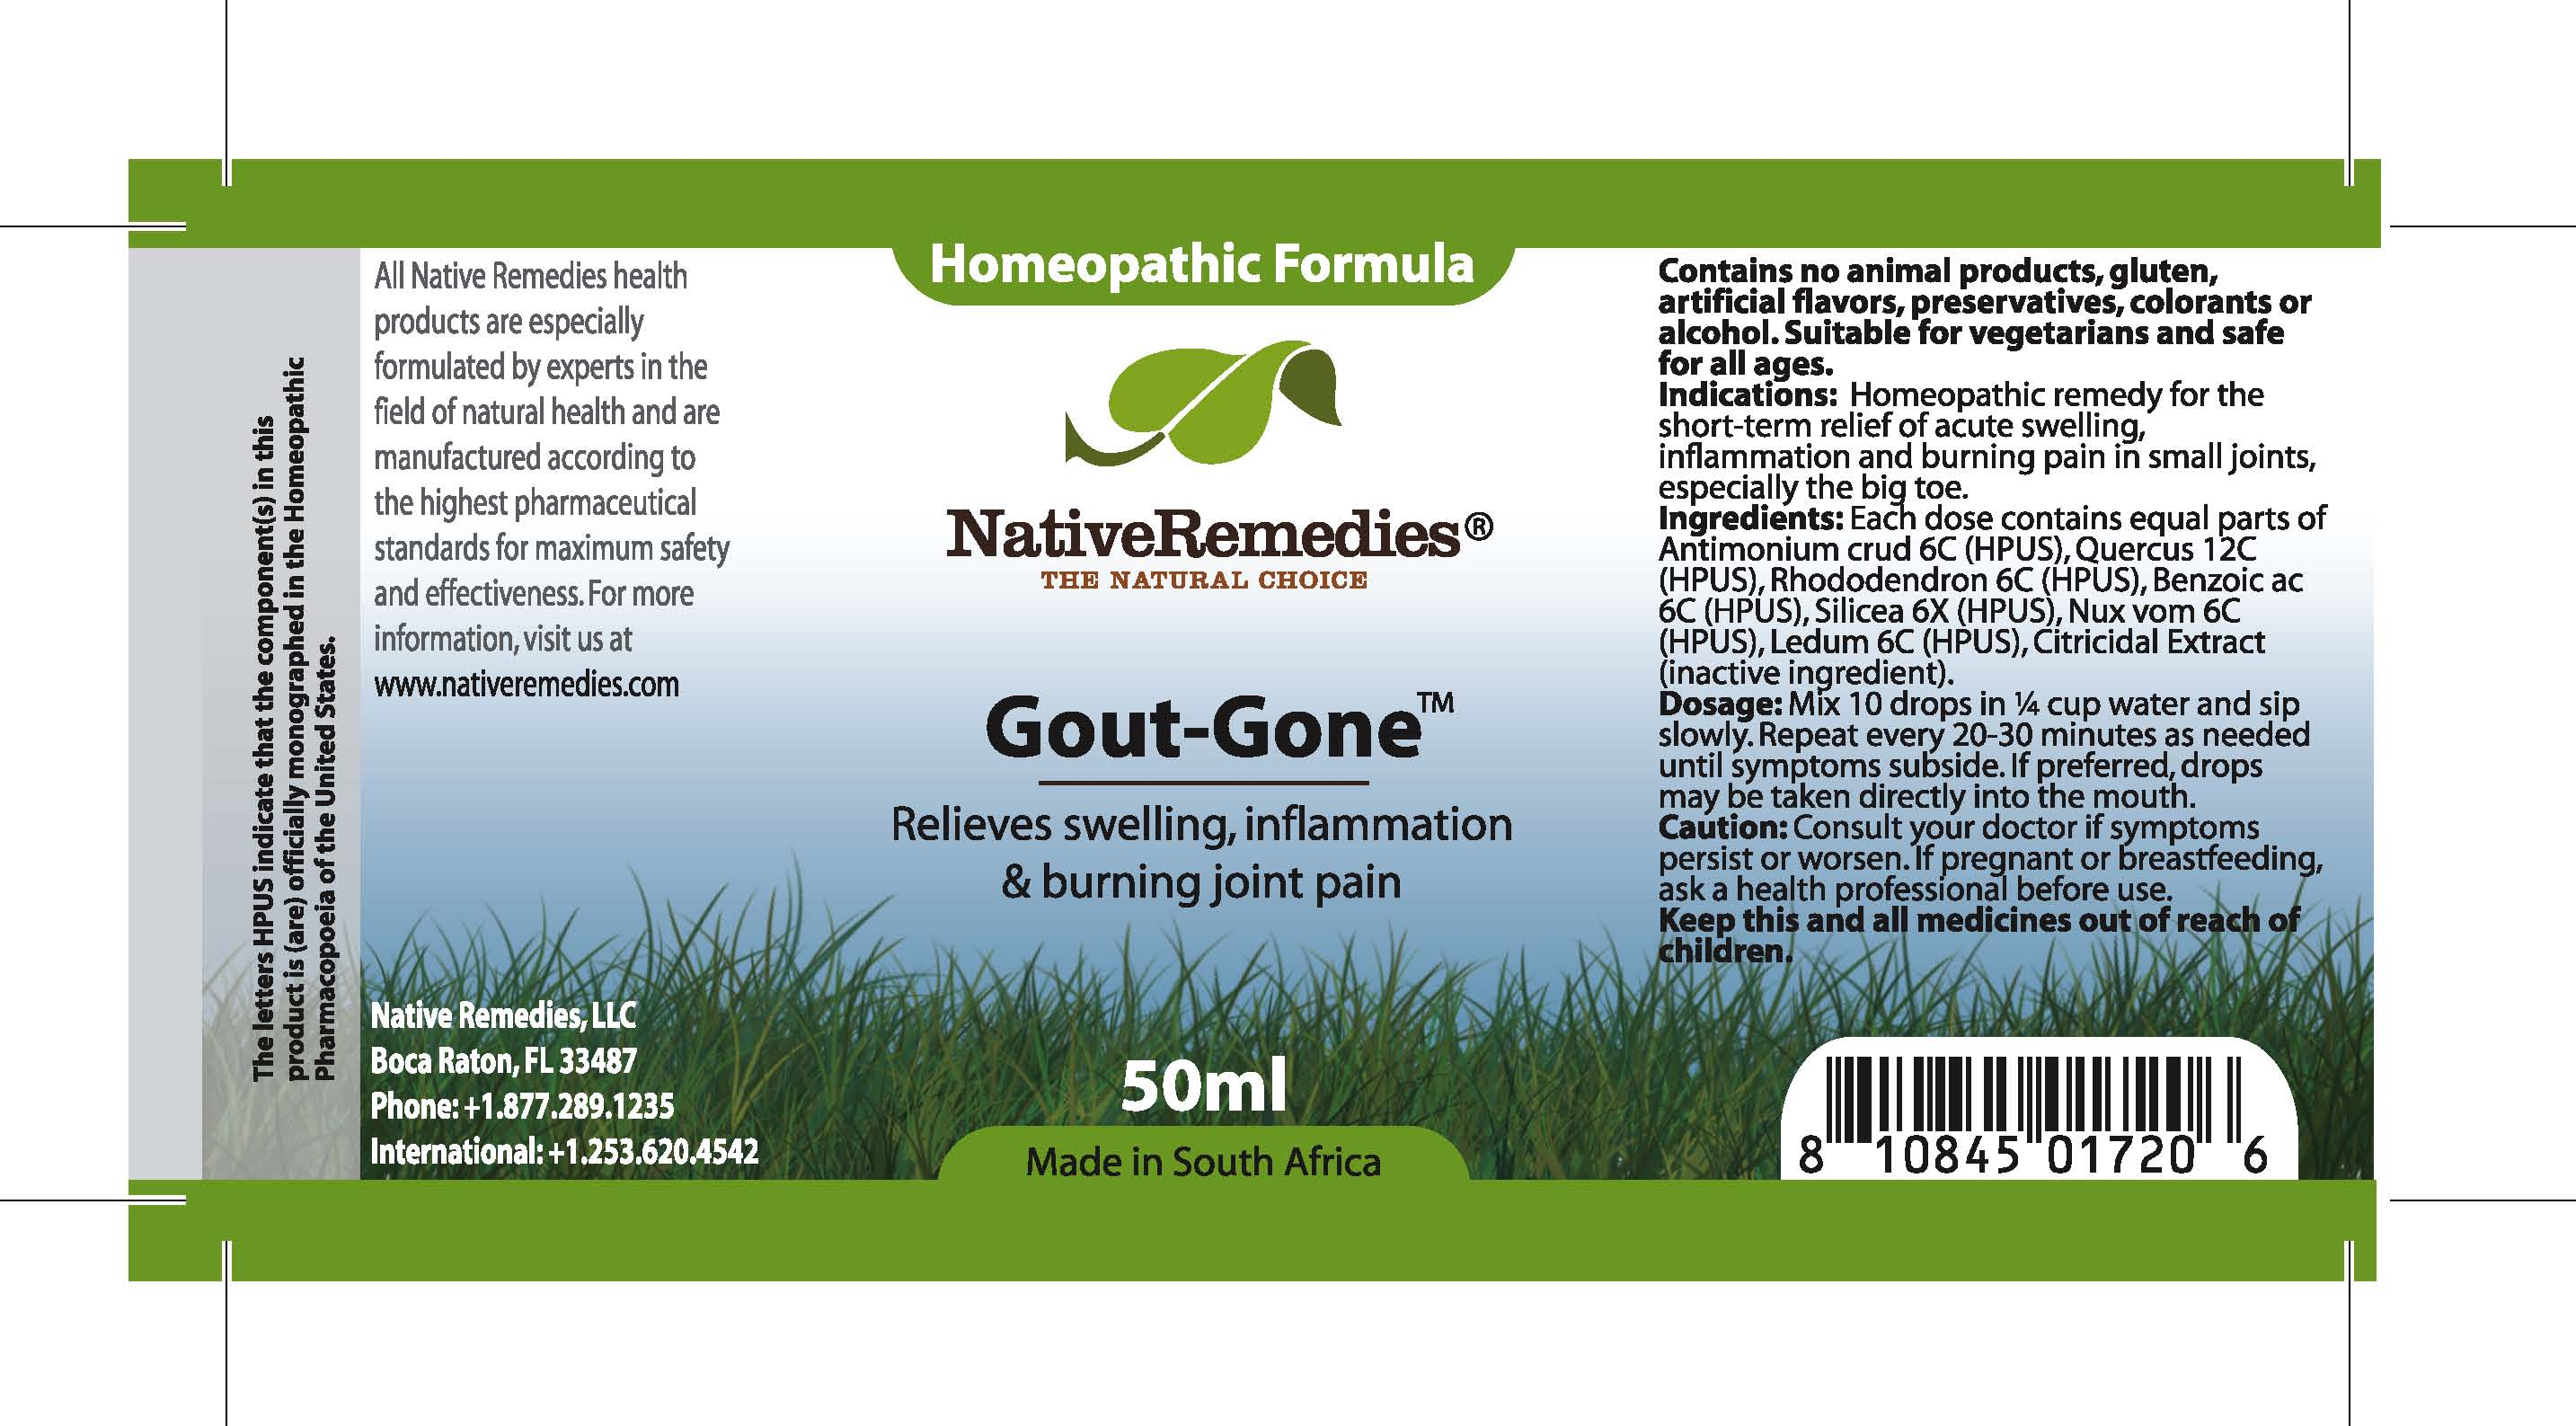 Gout-gone (Antimonium Crud , Quercus , Rhododendron, Benzoic Ac , Silicea , Nux Vom , Ledum , Citricidal Extract ) Tincture [Feelgood Health]